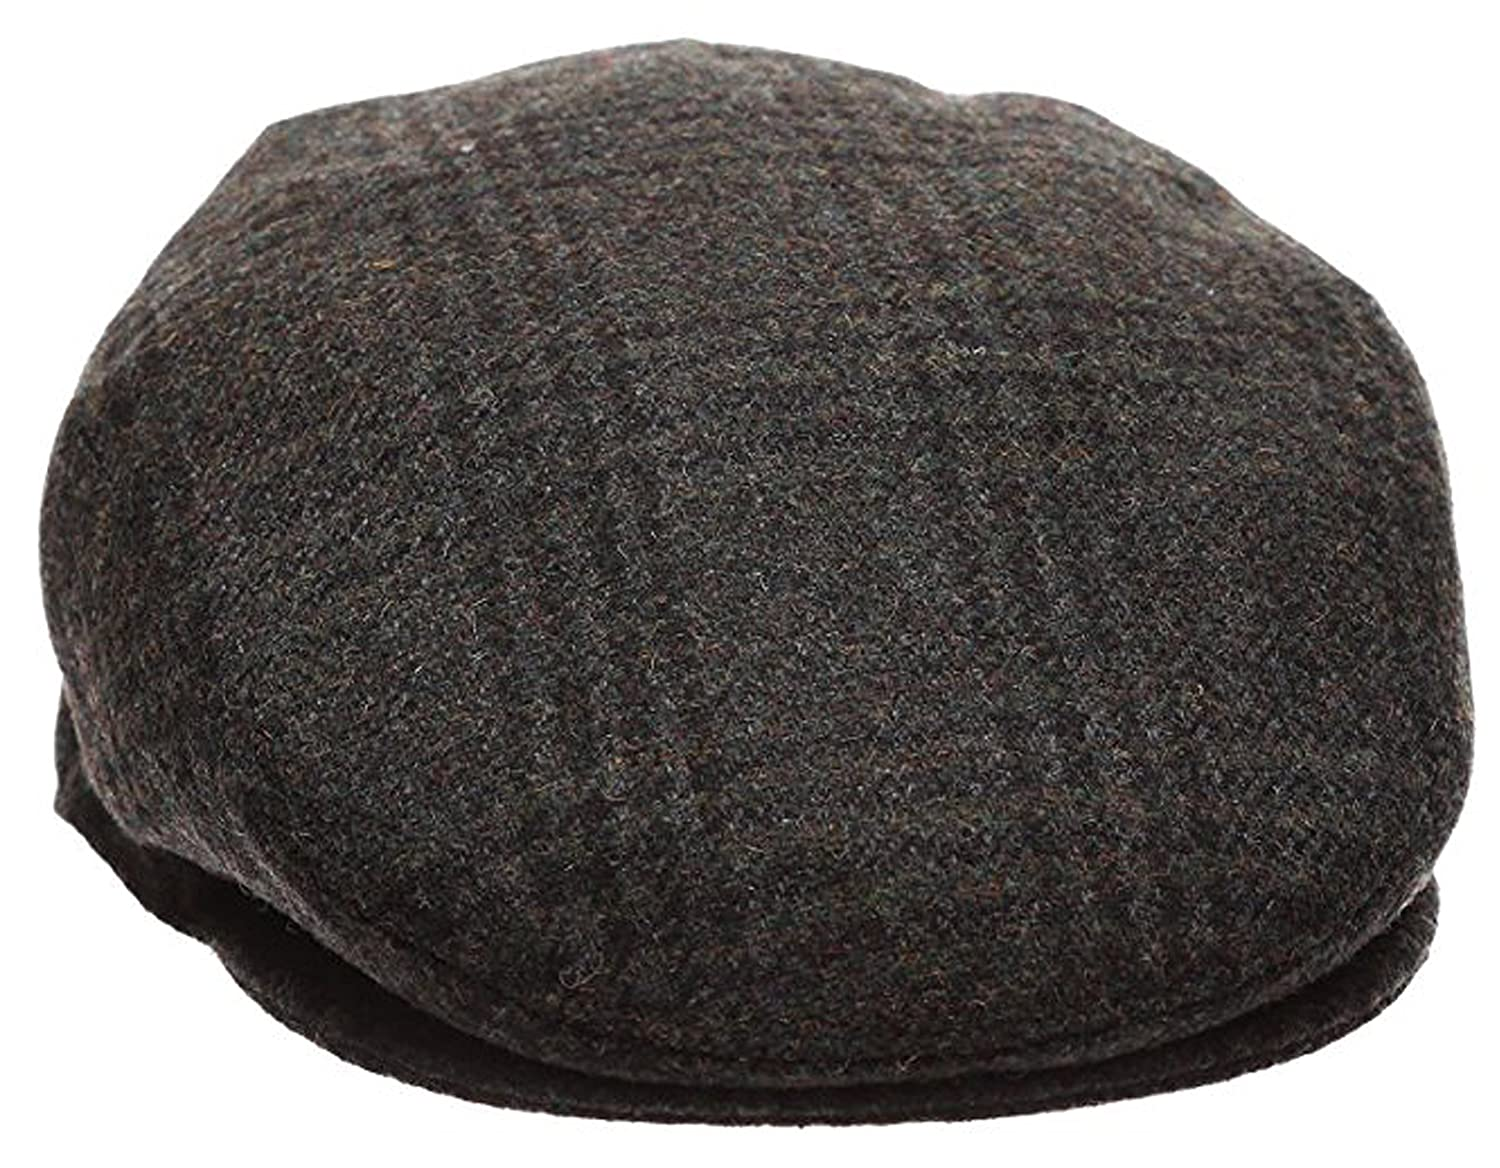 08e6d844 Epoch hats Men's Premium Wool Blend Classic Flat IVY newsboy Collection Hat  at Amazon Men's Clothing store: